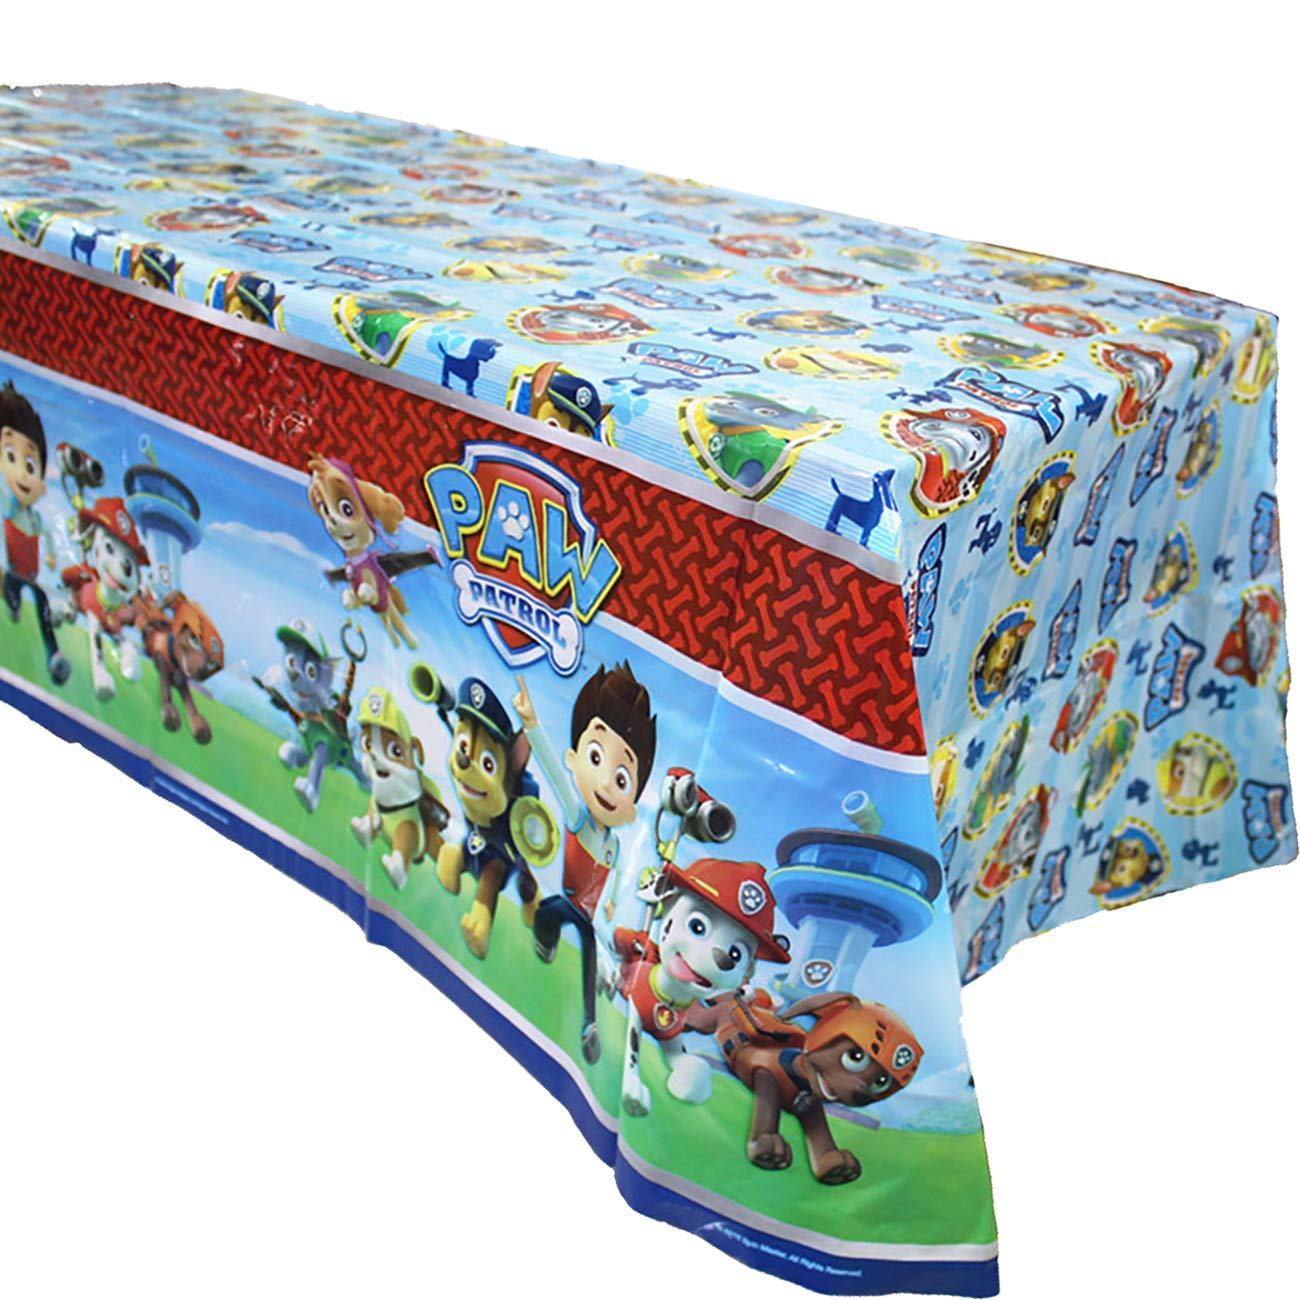 """3 Pack Paw Dog Patrol Themed Birthday Party Decorations Disposable PAW Dog Patrol Plastic Tablecloth 71.25 x51.96 /"""",Table Cover Party Supplies for Kids"""